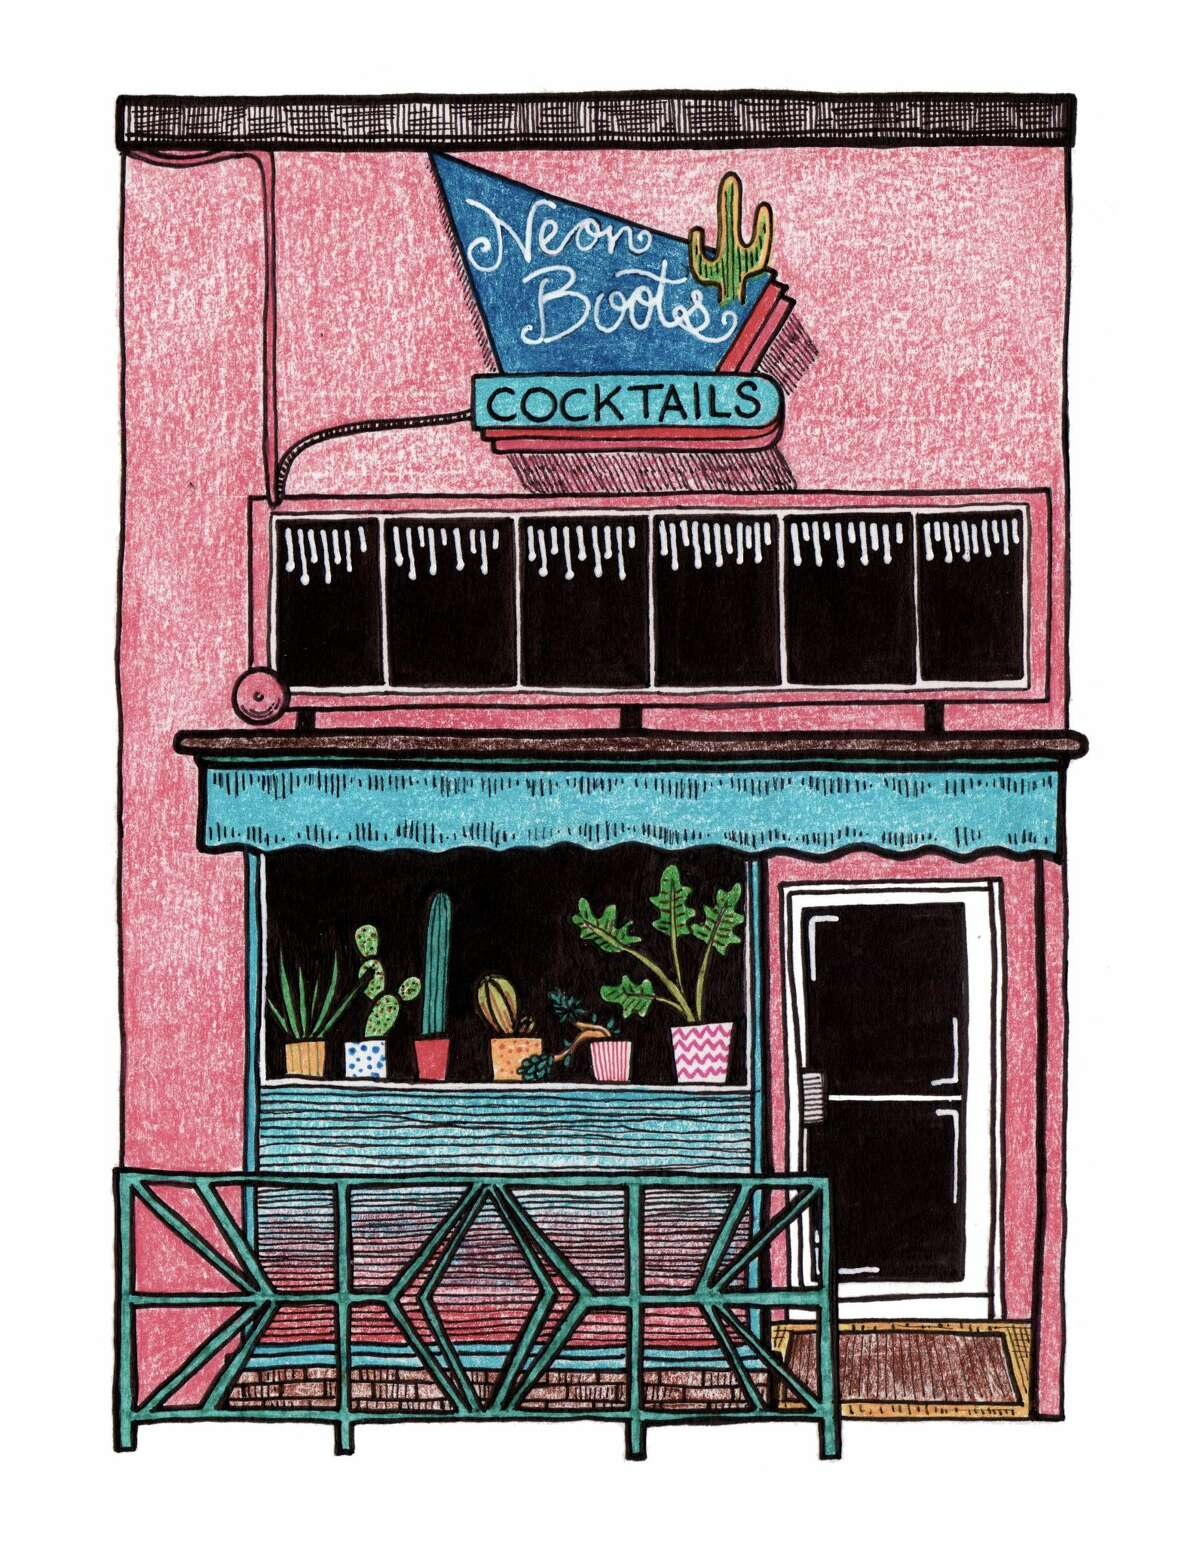 Neon Boots (Belltown) made in 2020 with India ink, colored pencil and gouache on paper.